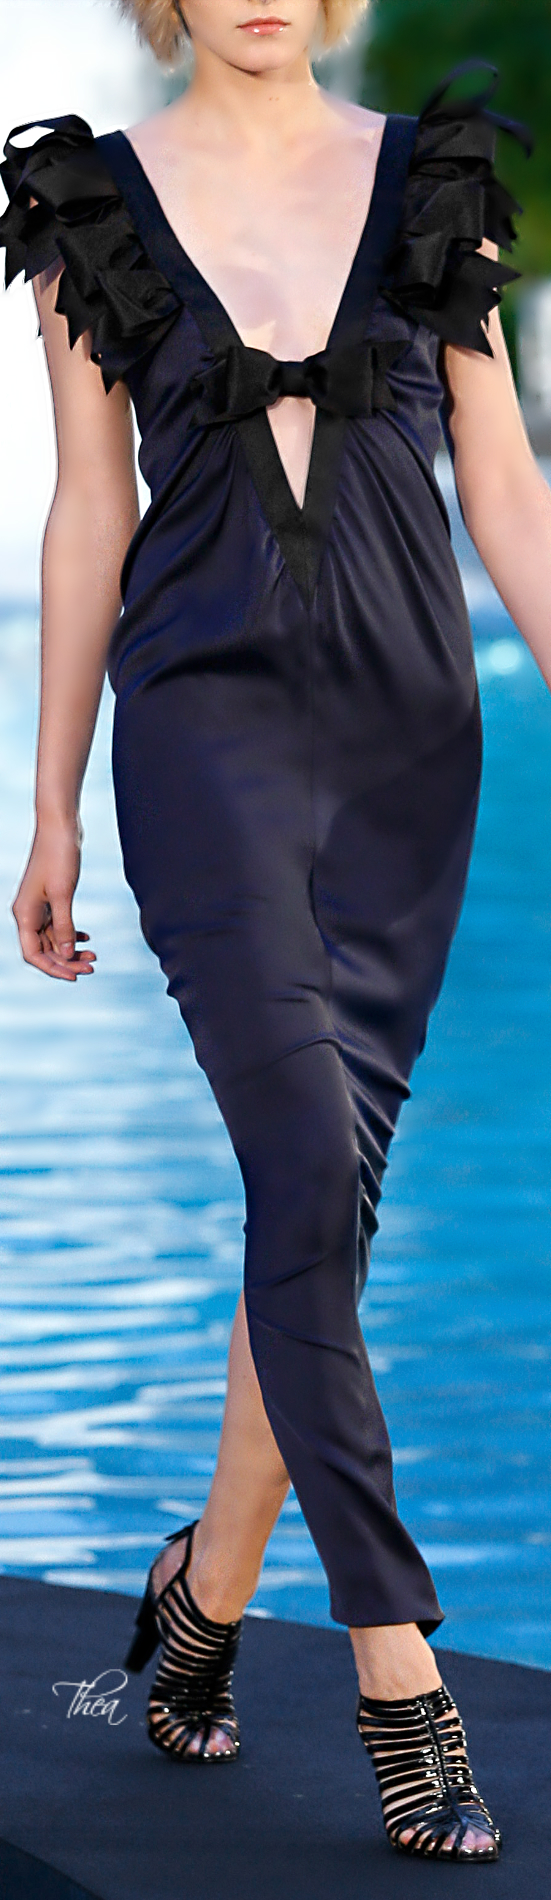 Chanel ~ Cruise Low V Neckline Maxi, Black 2015 The ribbons looking like feathers